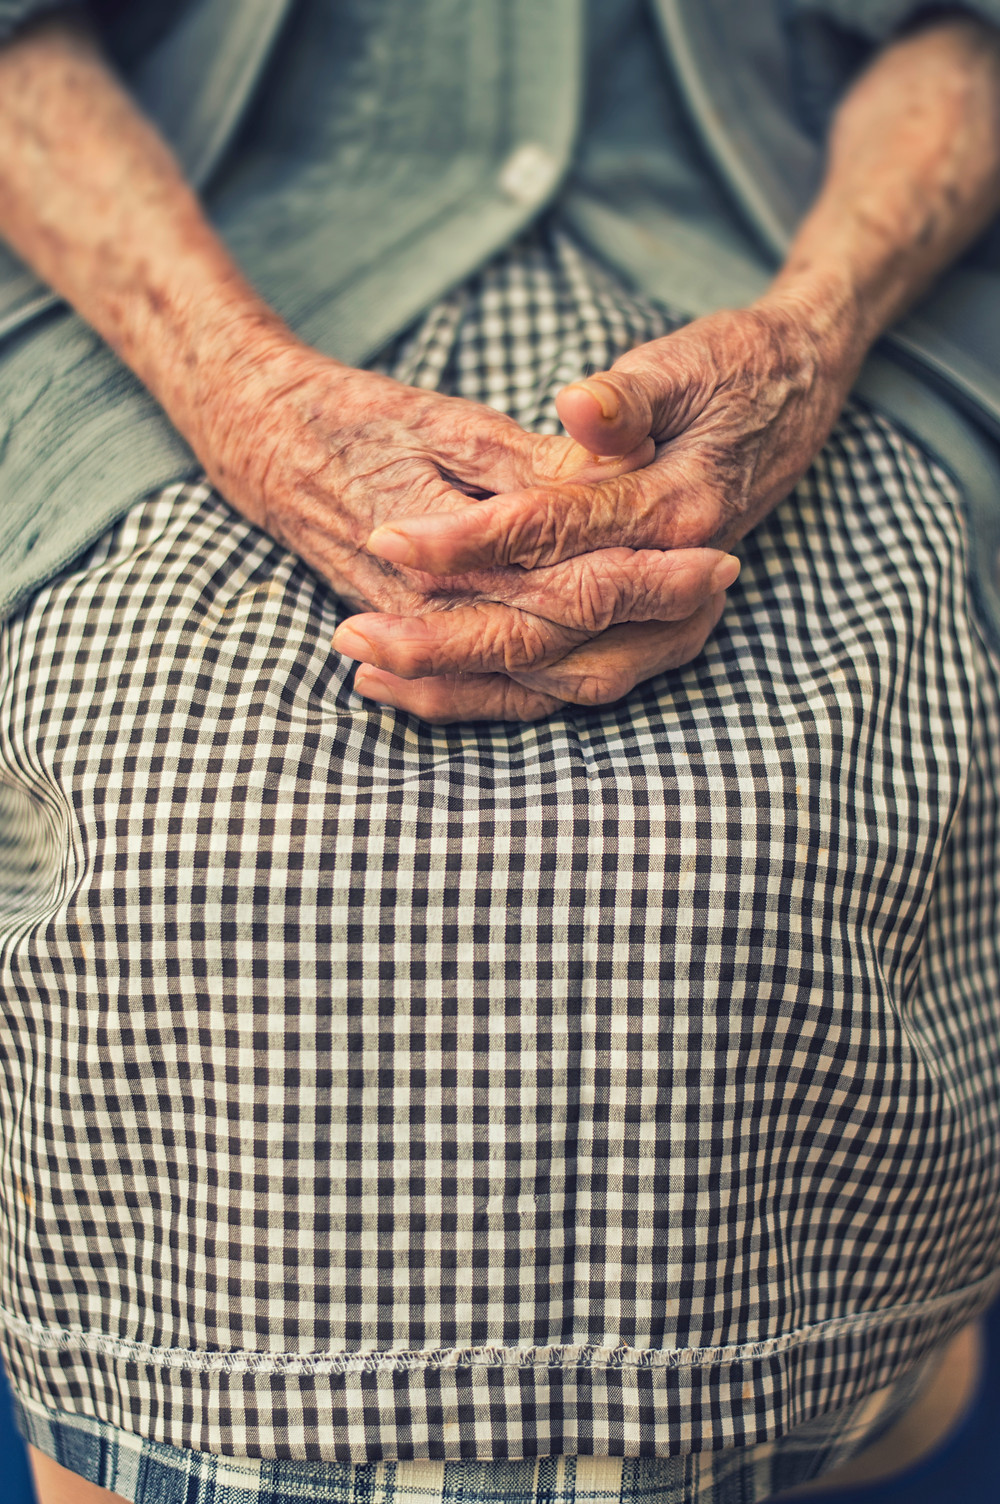 What Constitutes Nursing Home Negligence in New York?